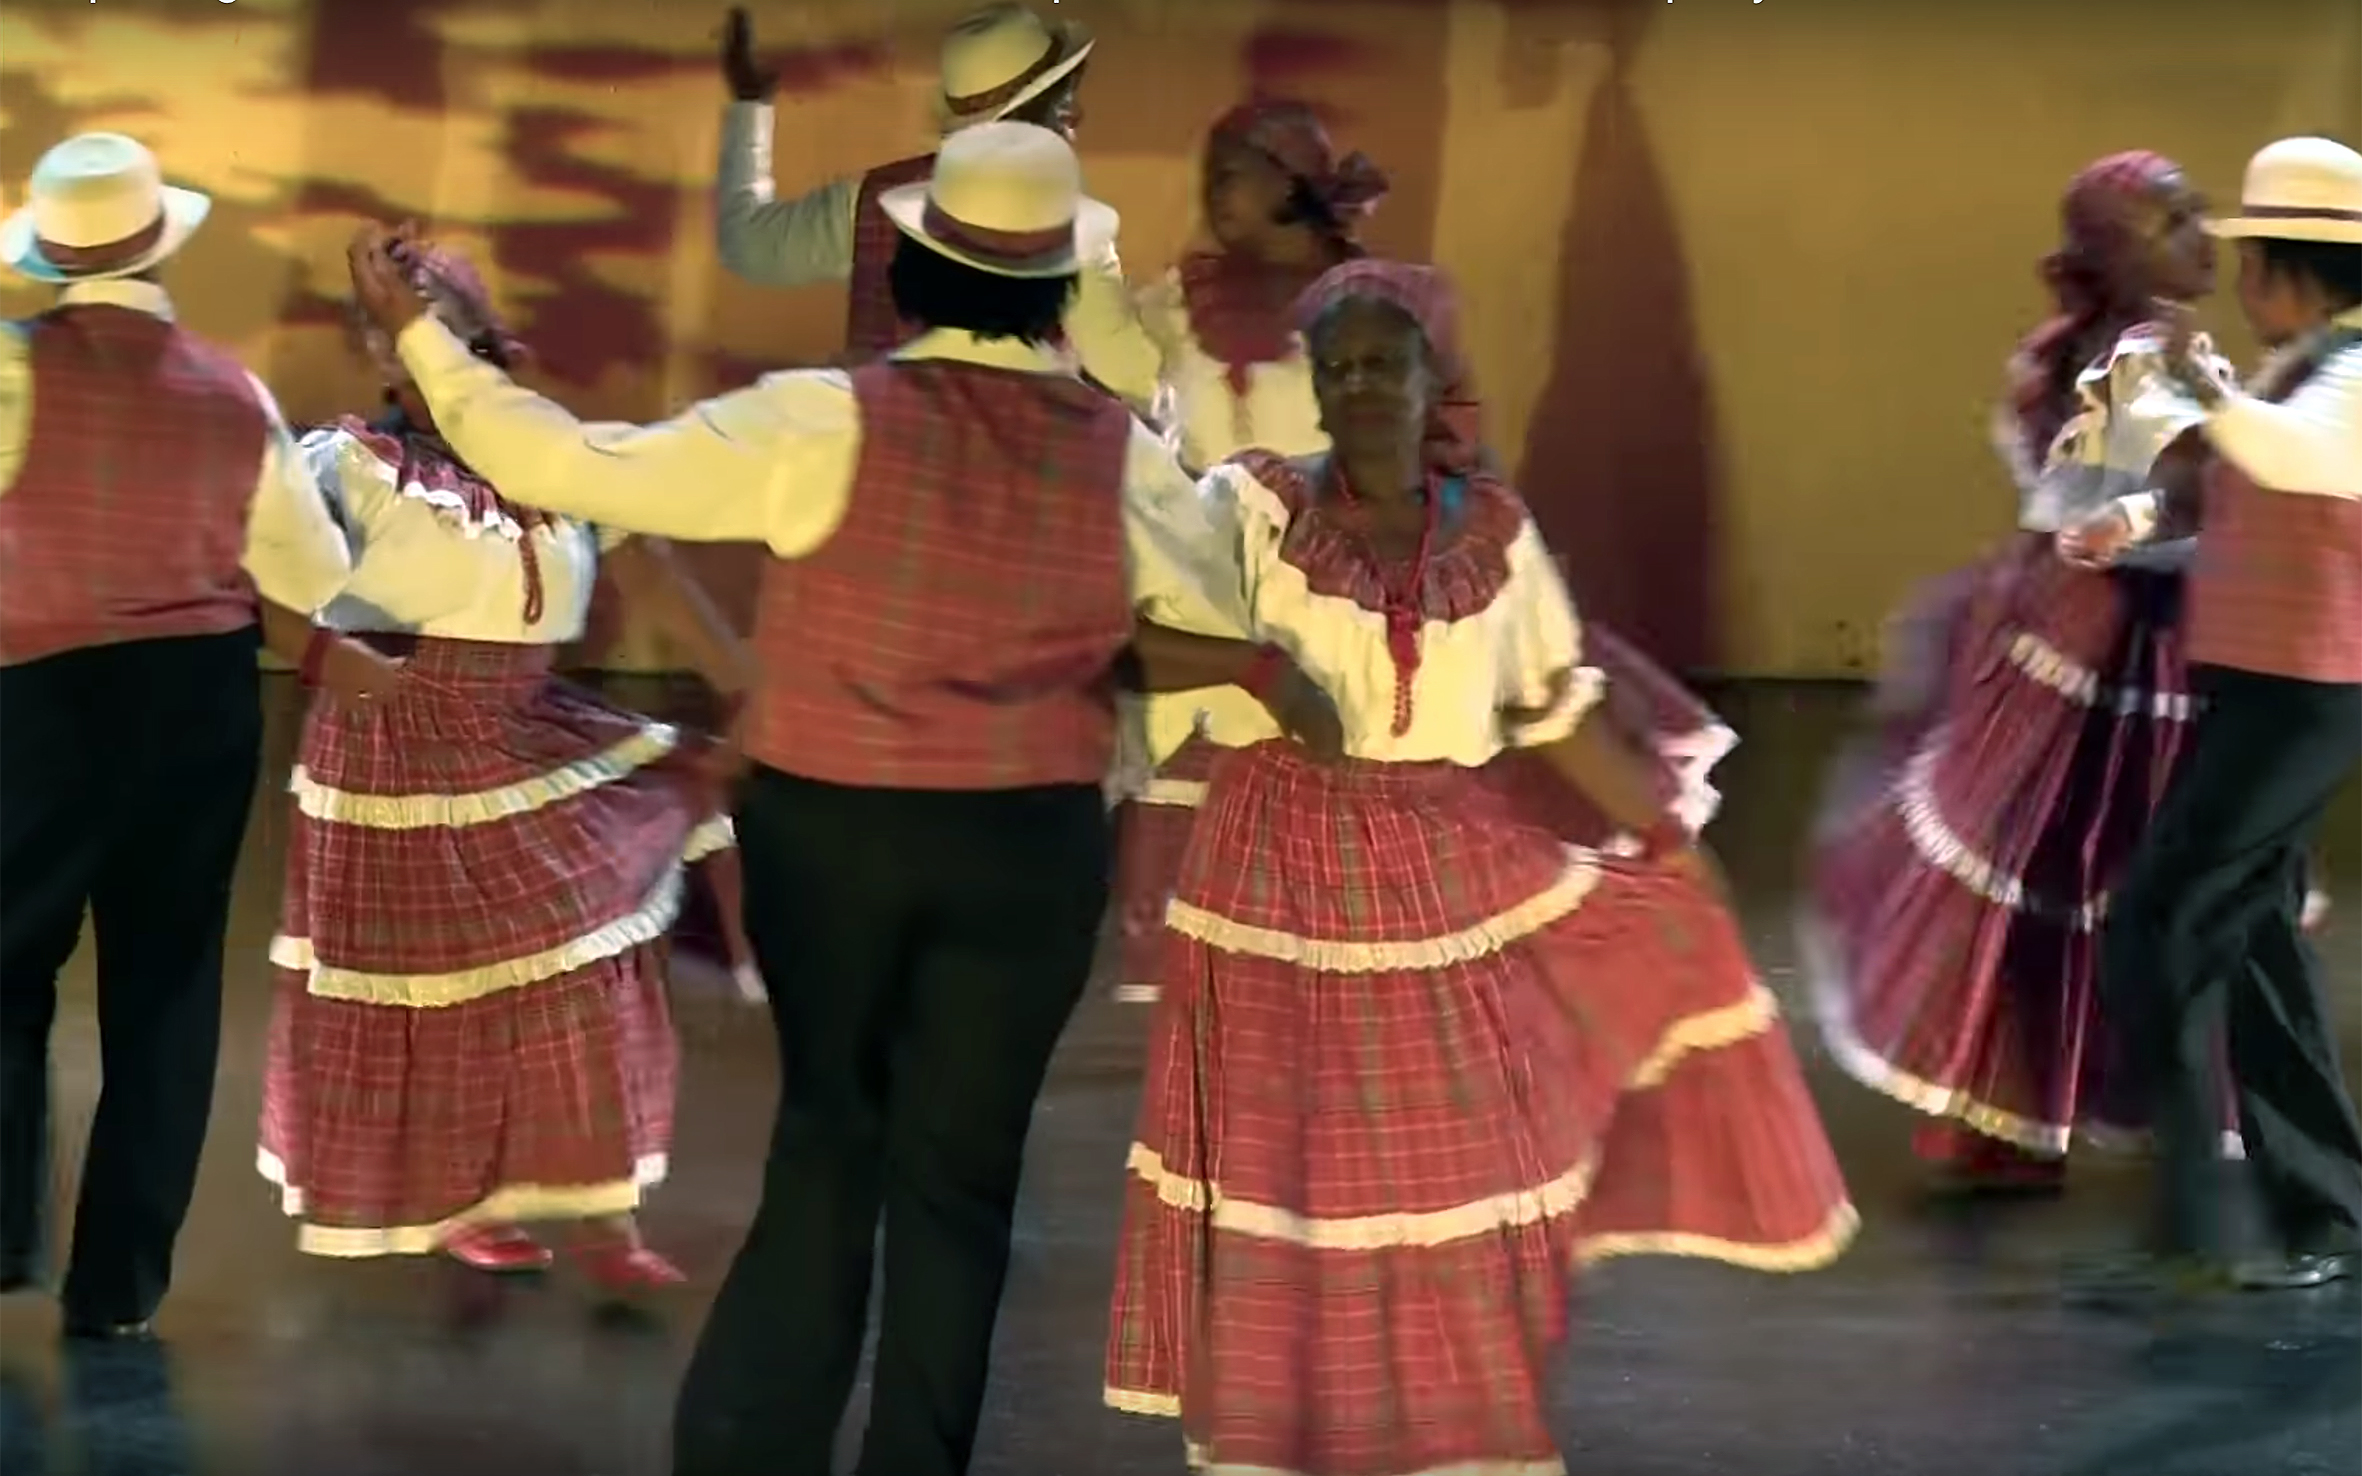 718.QUADRILLE / Guadeloupe / Jamaica - QUADRILLE is a European dance from the 18th century, which was brought by colonists into the West Indies. Most of the time the music is played with an accordion and compared to the others traditional music Quadrille is the most complex. The dance was practiced together with a partner during the slavery. Masters practiced the Quadrille in couples, while slaves only practiced the dance to make fun of the colonists. It is also danced in Jamaica.